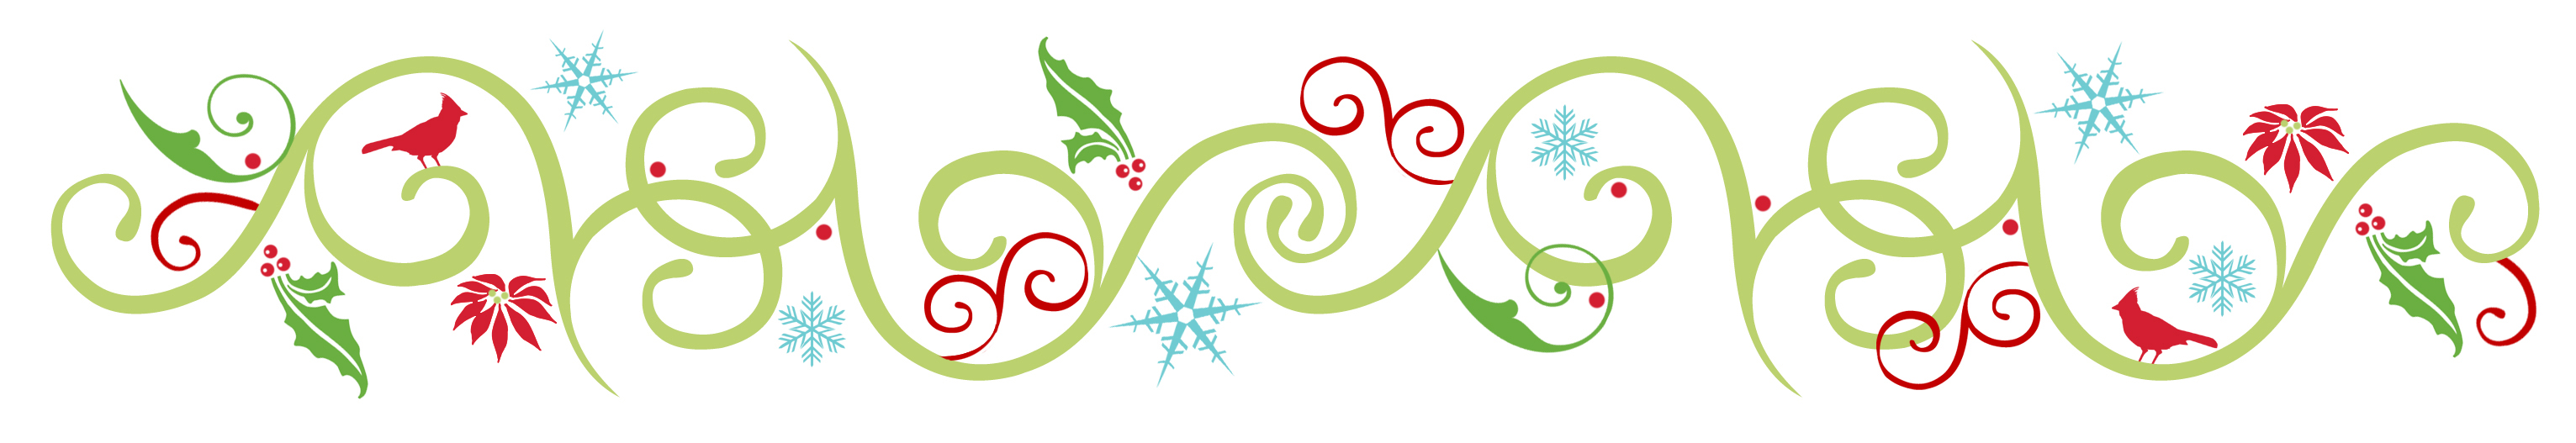 Advent clipart border for free download and use images in.